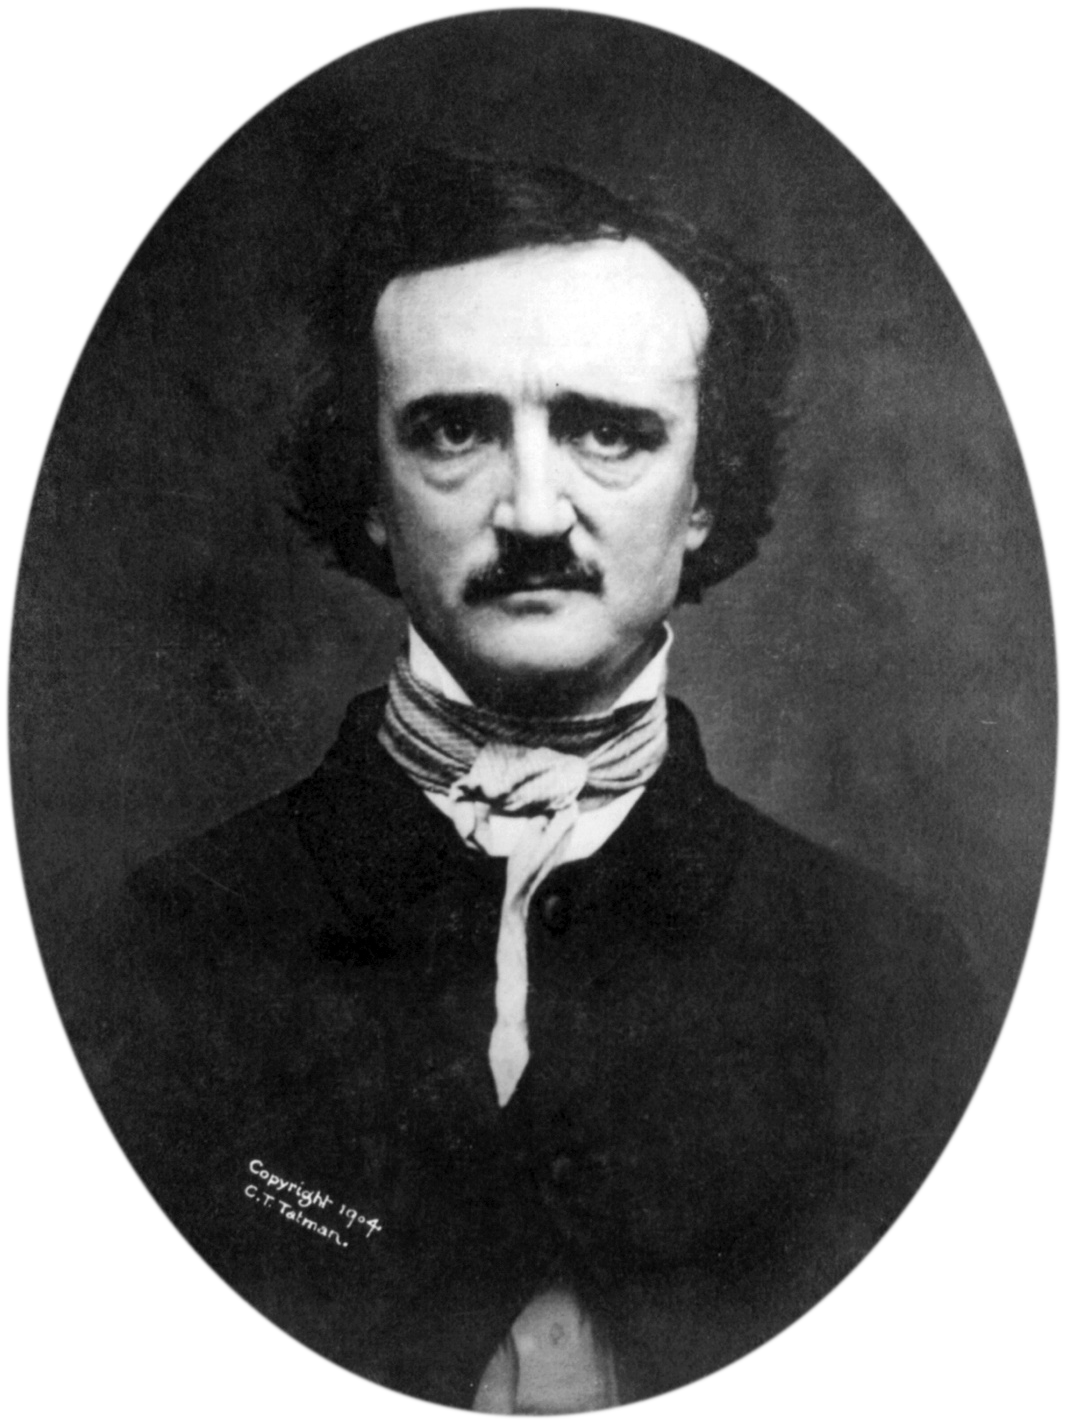 edgar allan poe on photography phogotraphy edgar allan poe 2 retouched and transparent bg